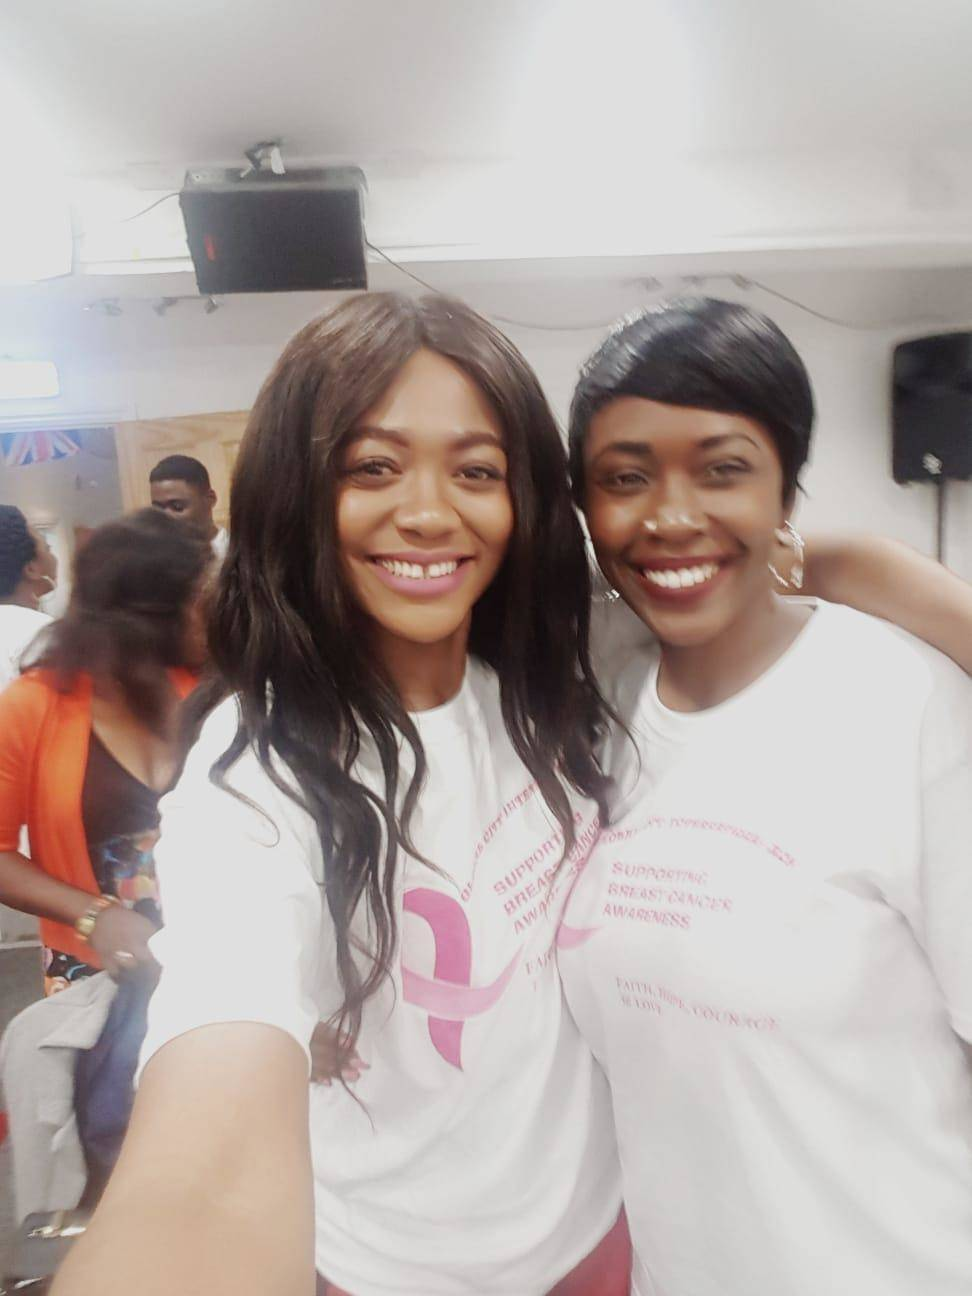 Xceptional Ladies serving for breast cancer awareness